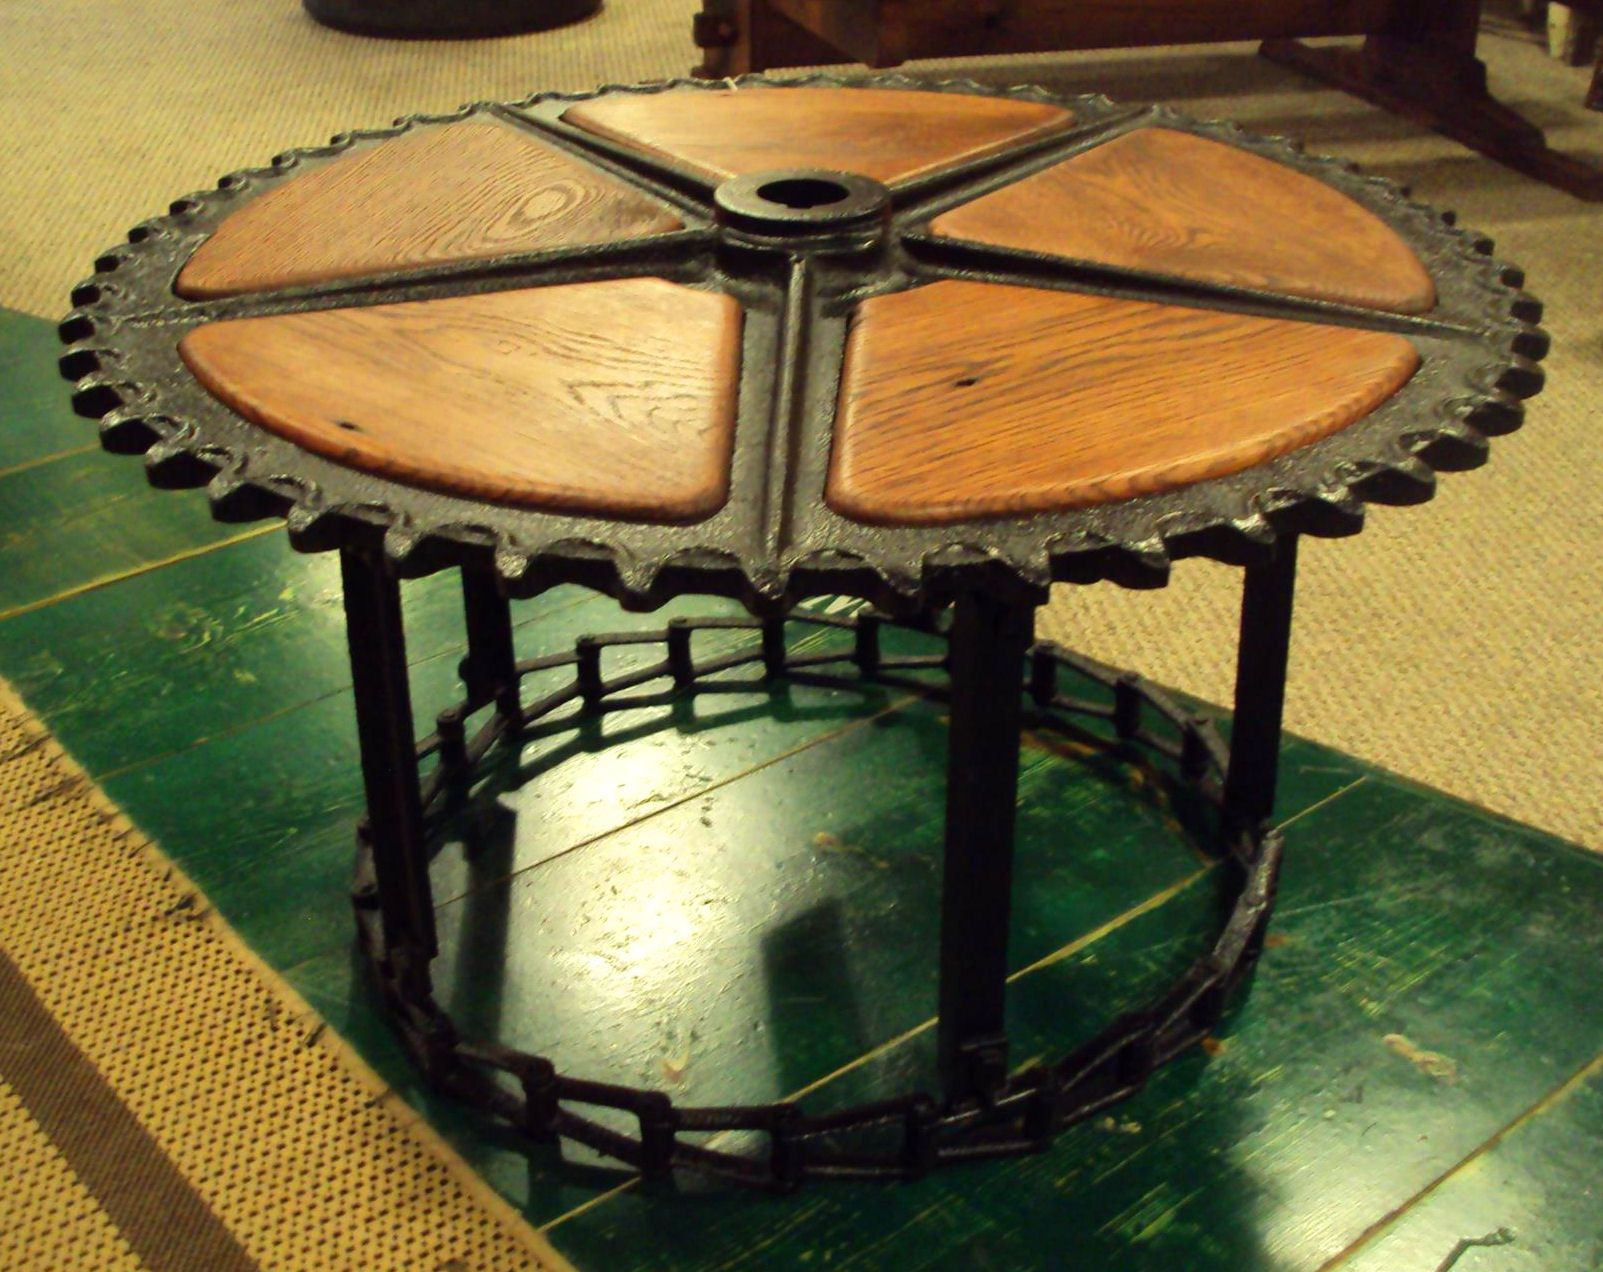 Industrial Large Saw Blade Table Inquire For A Custom Order Missdulcie Dmd Custom